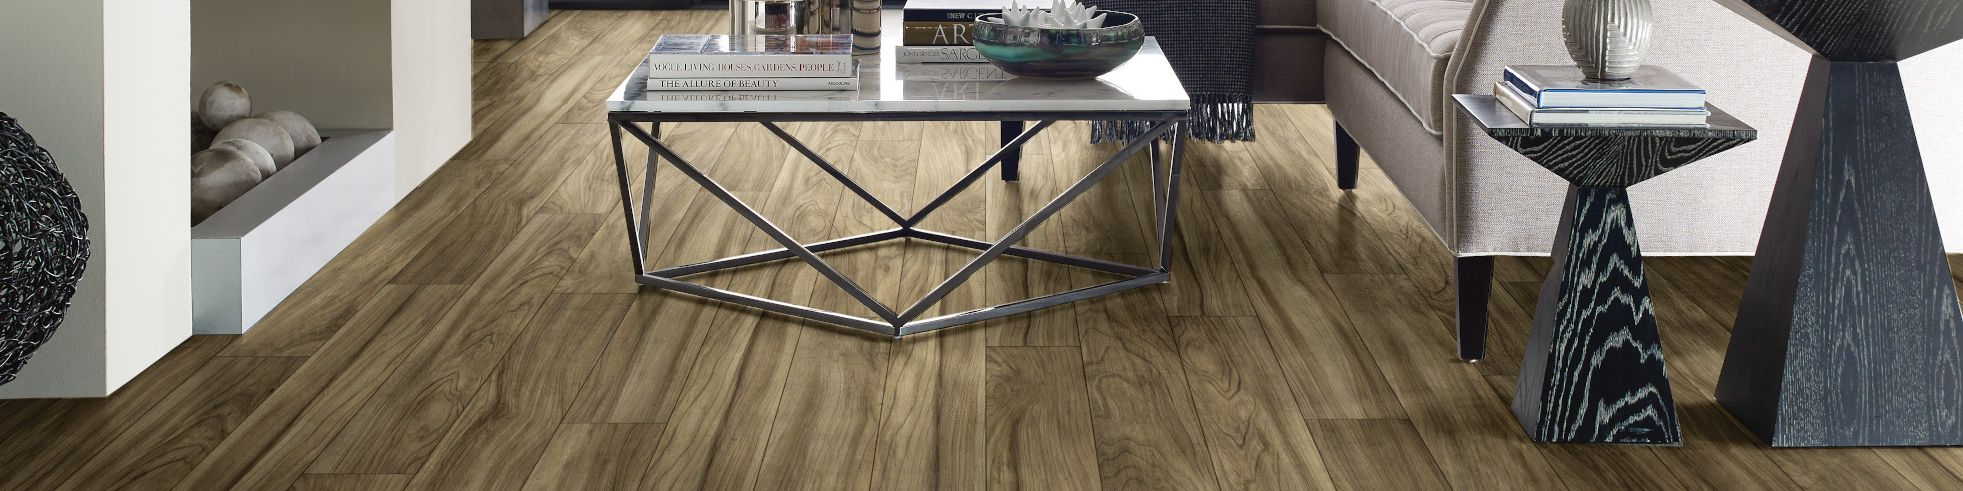 laminate-repel-terrene-sl443-02021-toscana-living-room-2020